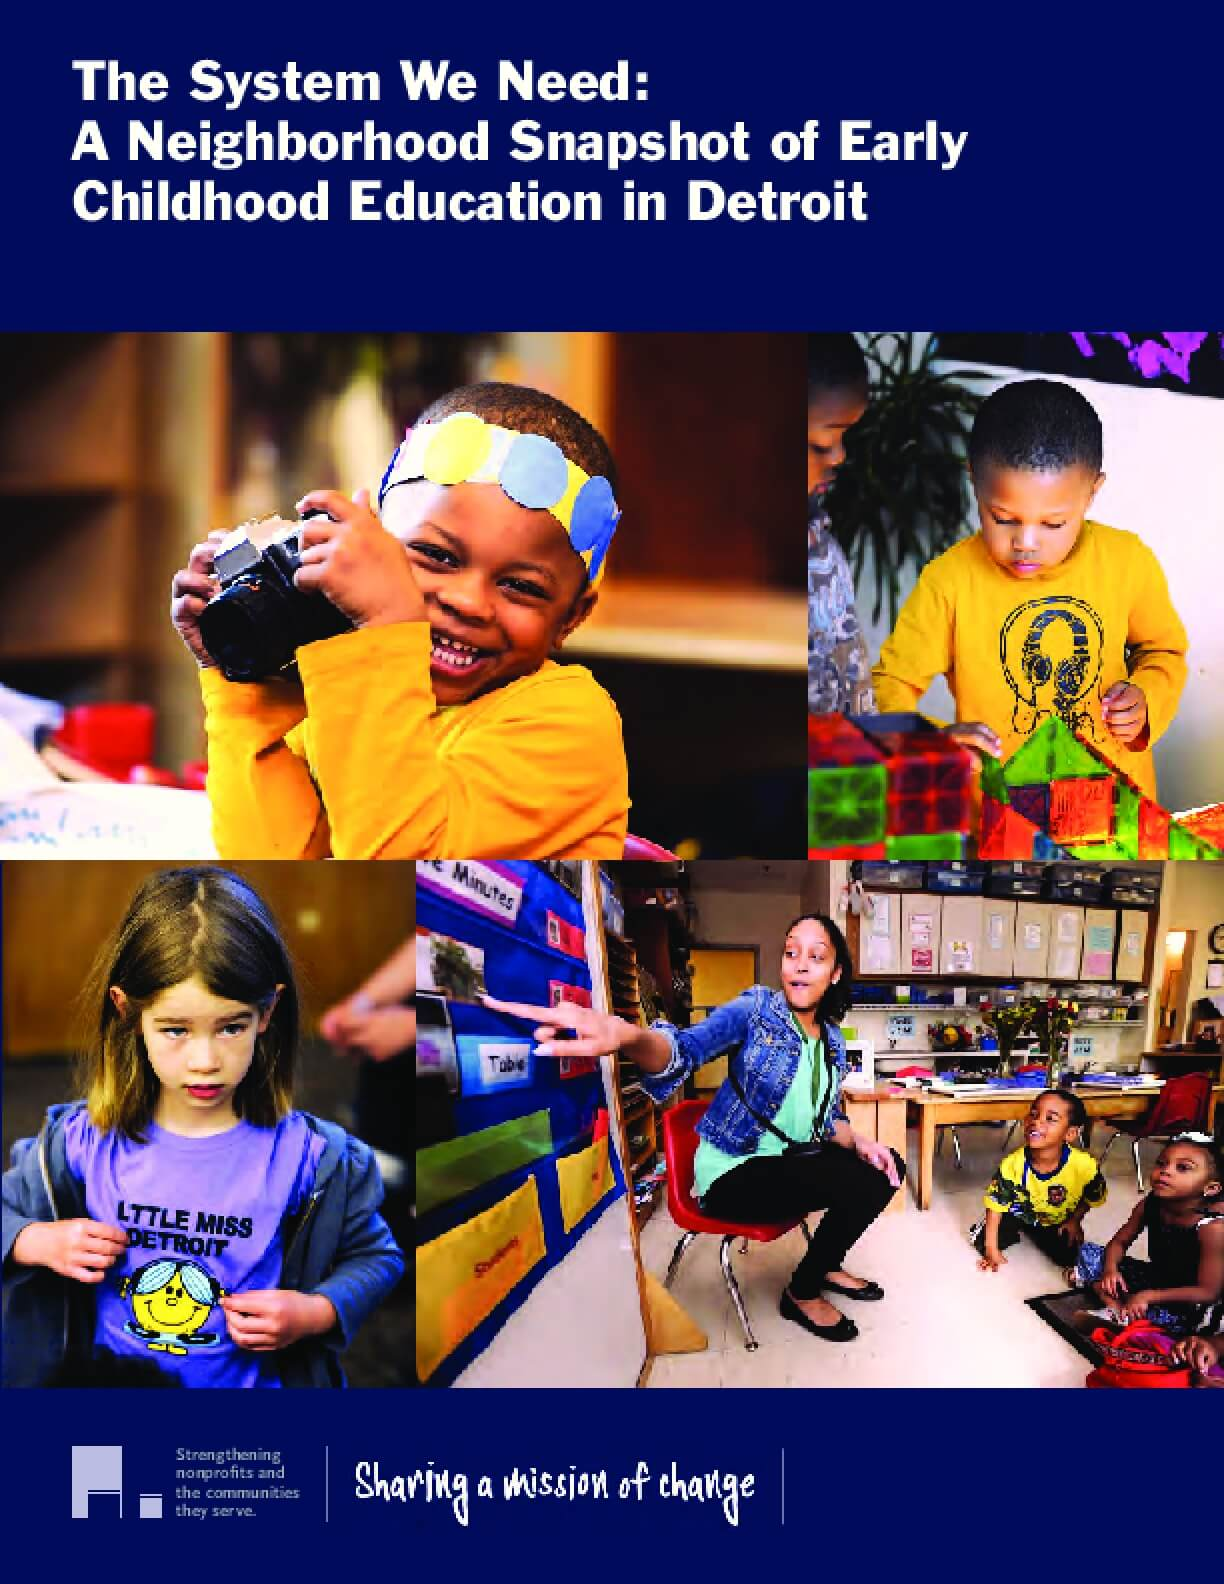 The System We Need: A Neighborhood Snapshot of Early Childhood Education in Detroit